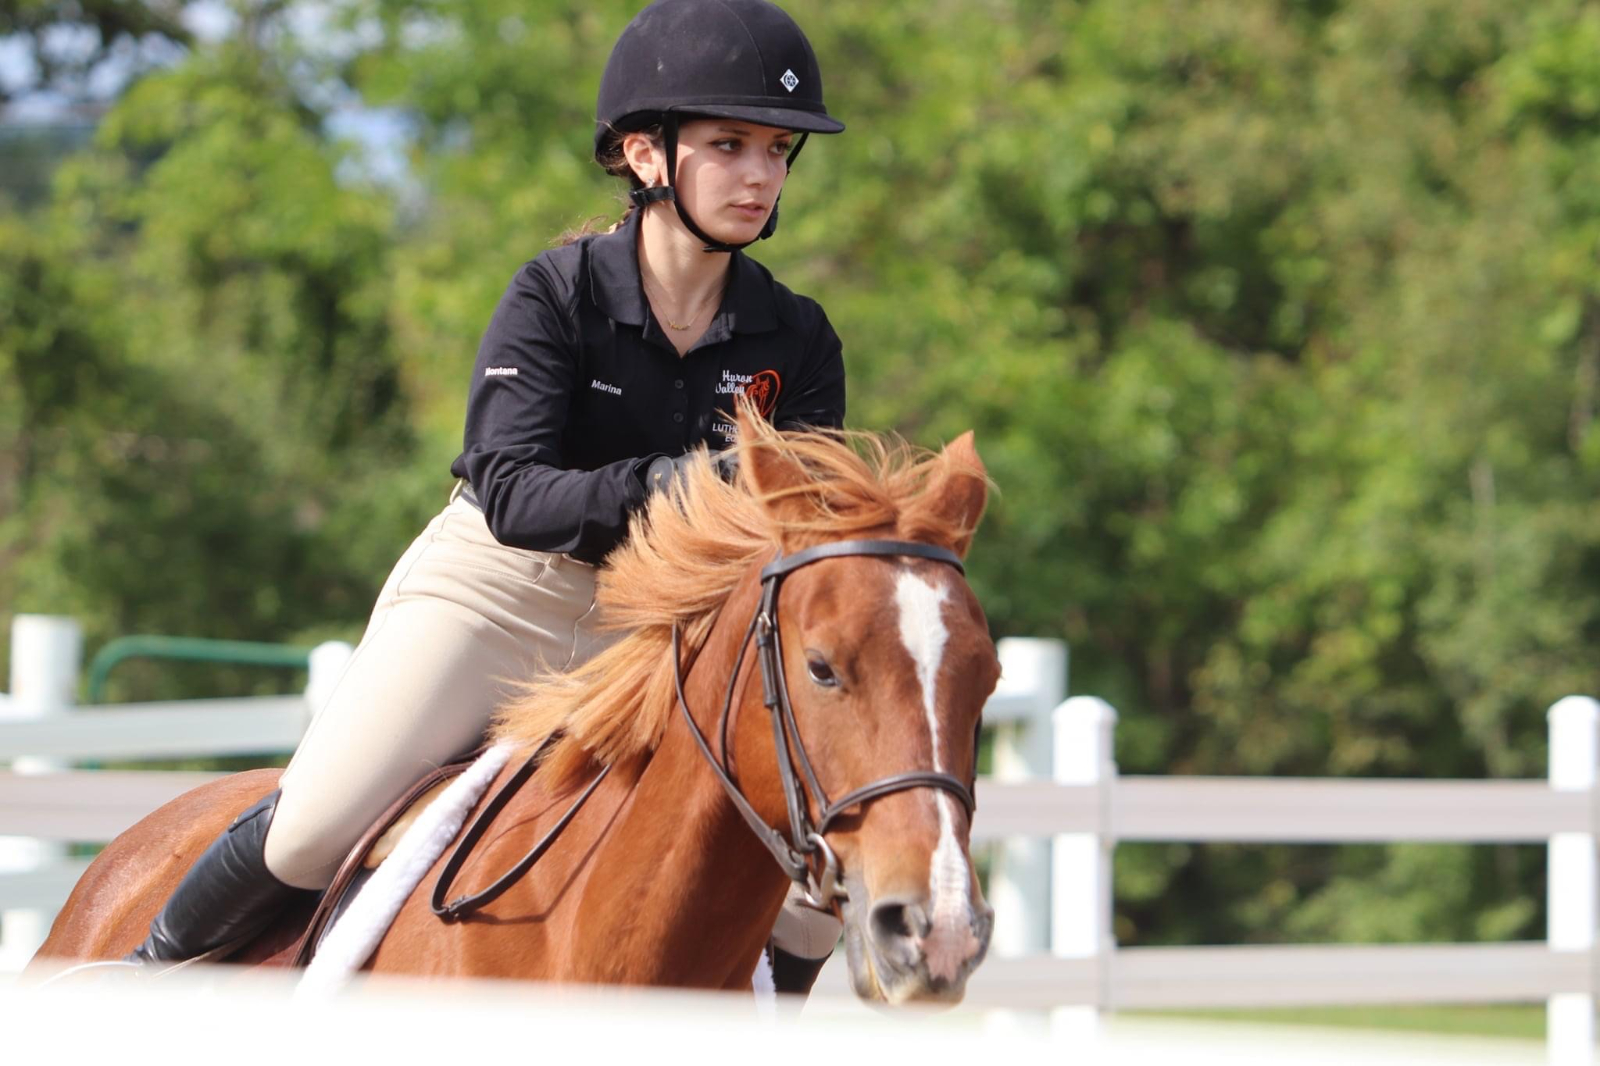 HVL Equestrian has Strong Showing in First Meet